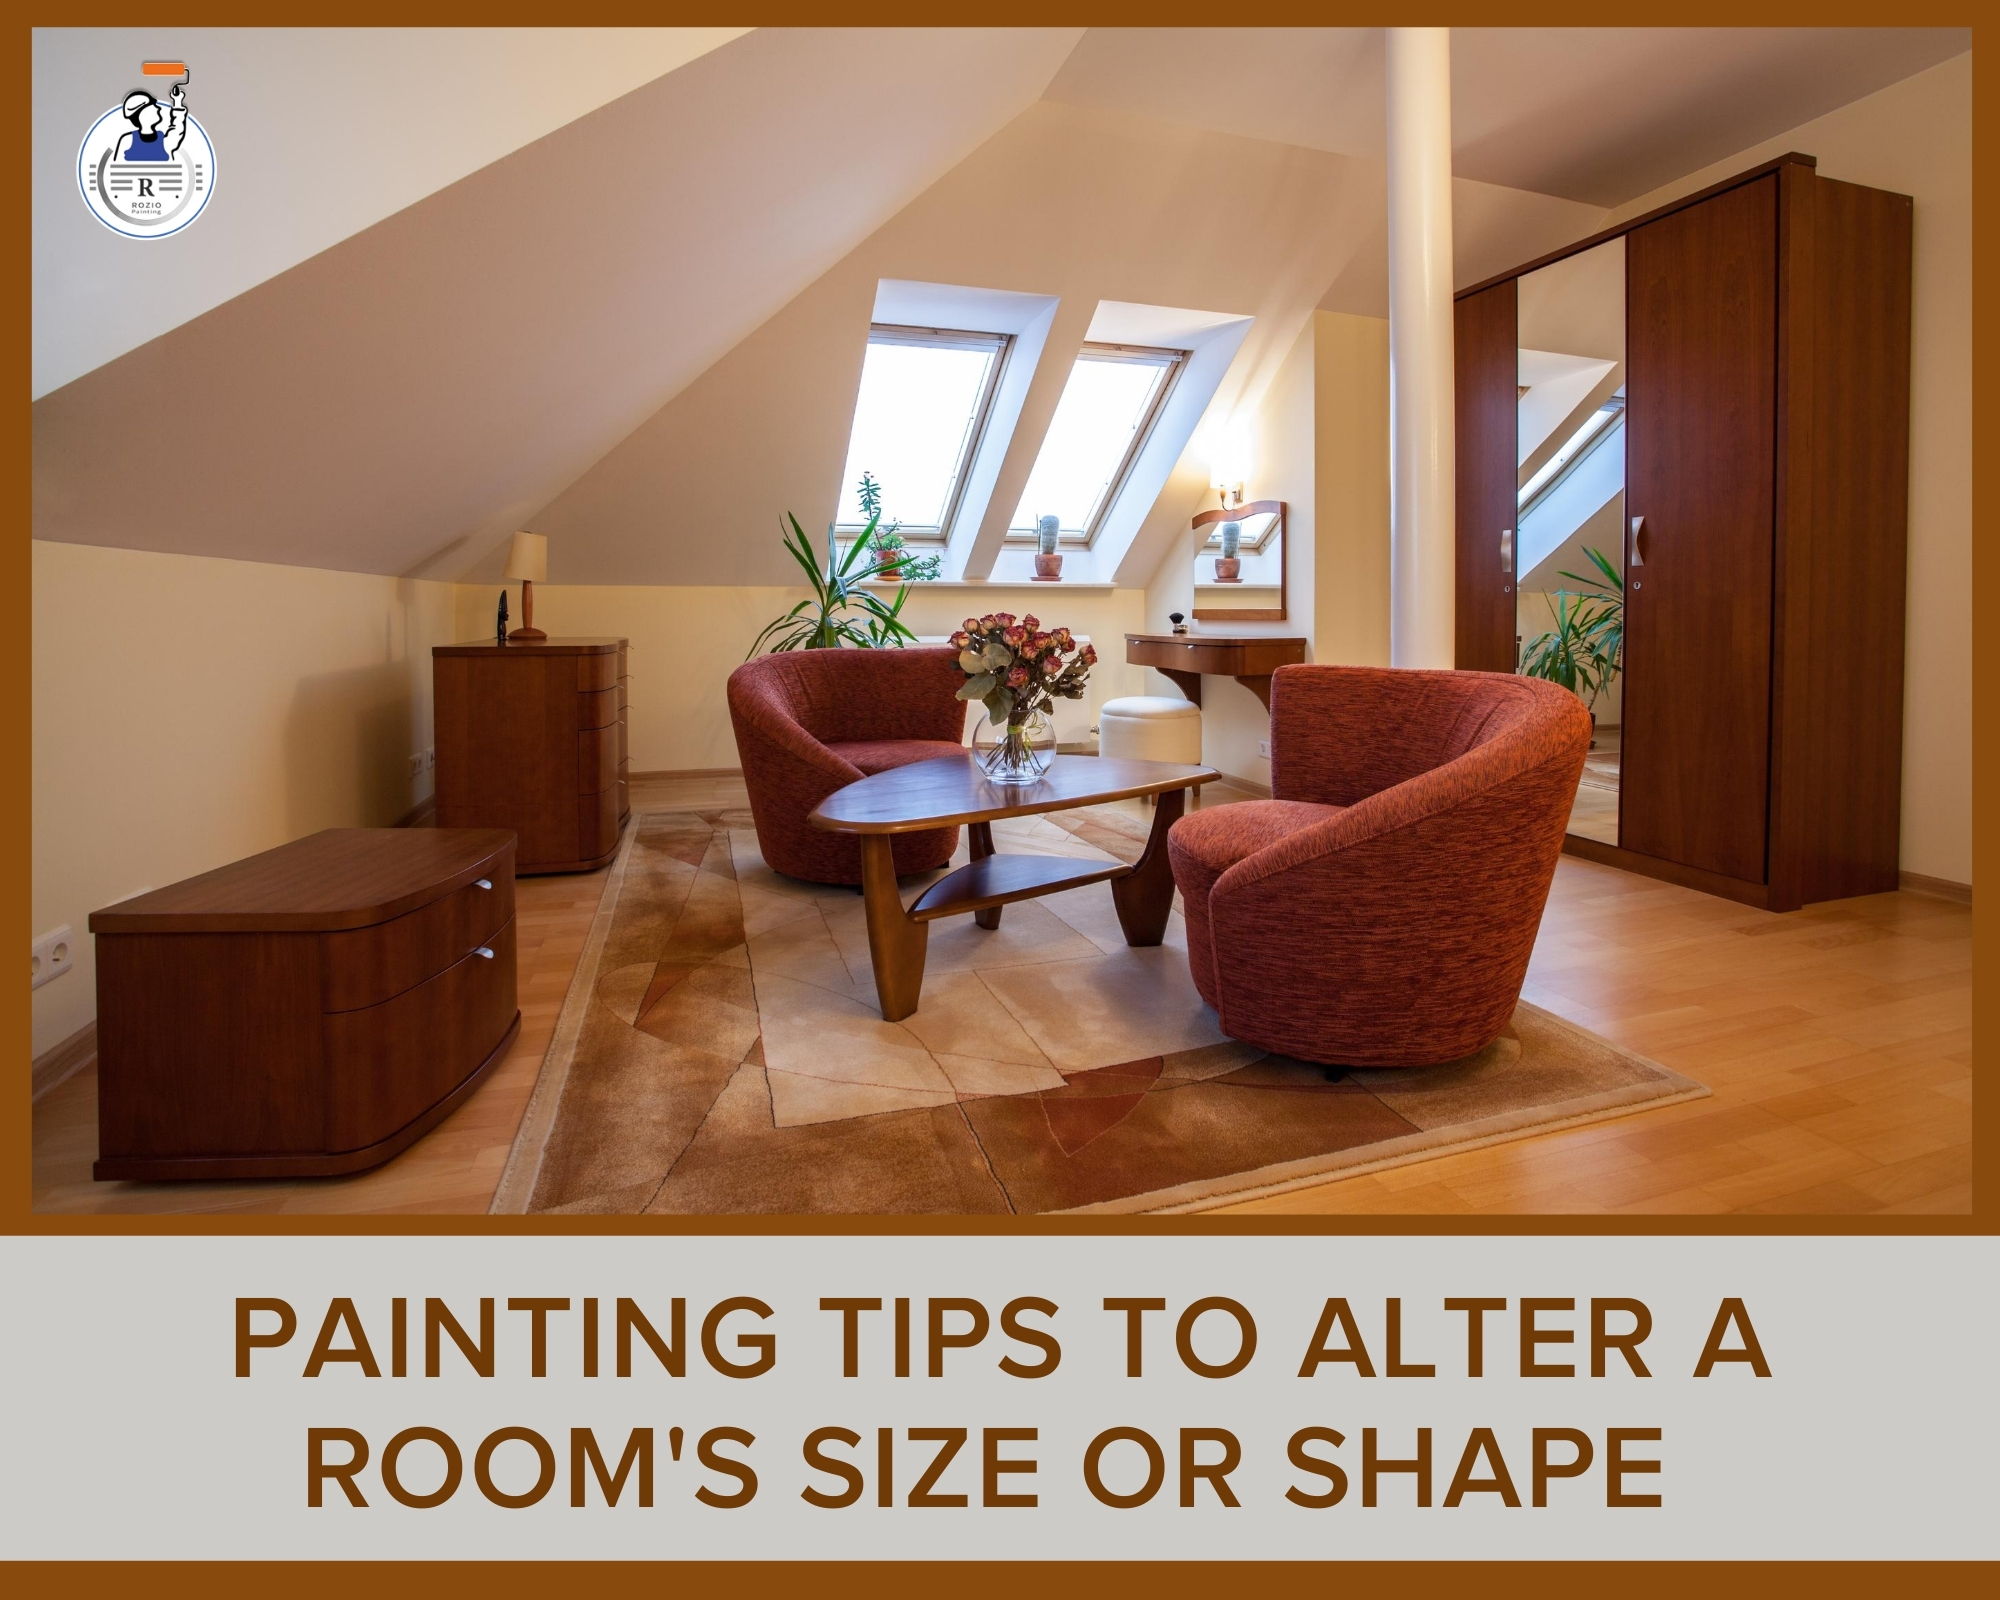 Painting Tips To Alter A Room's Size Or Shape